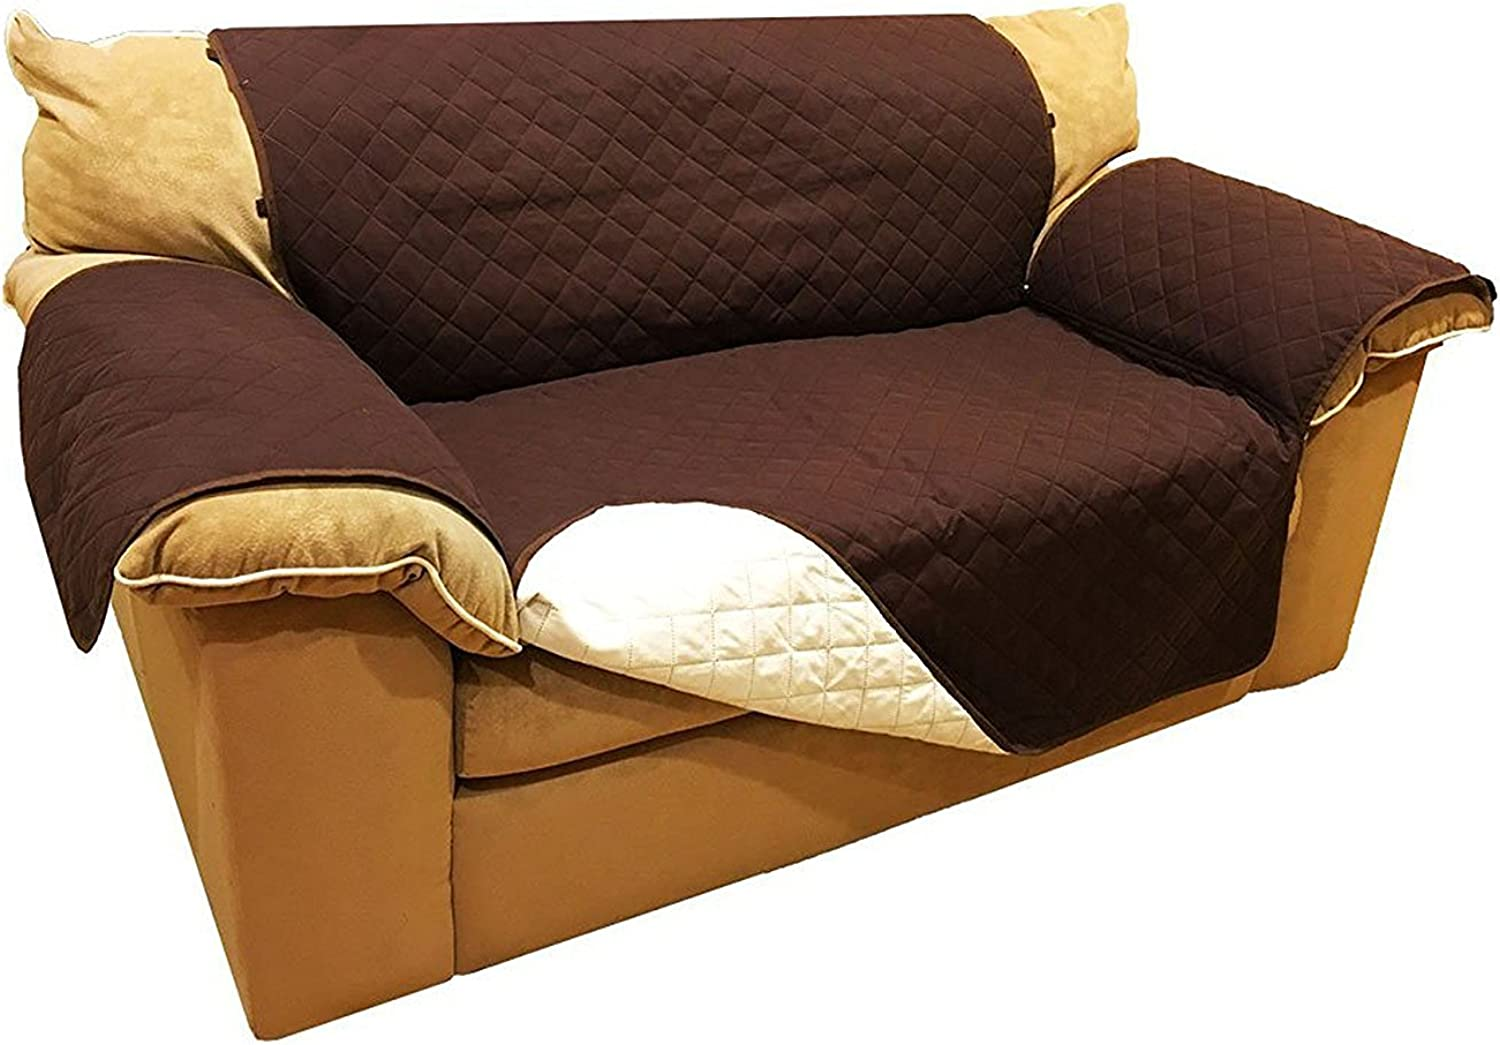 Aleko PSC02BRUNB 88 x 70 in.Pet   Seat Slipperd Spill Scratch Pet Fur Protection Cover for Mobilture, Brown